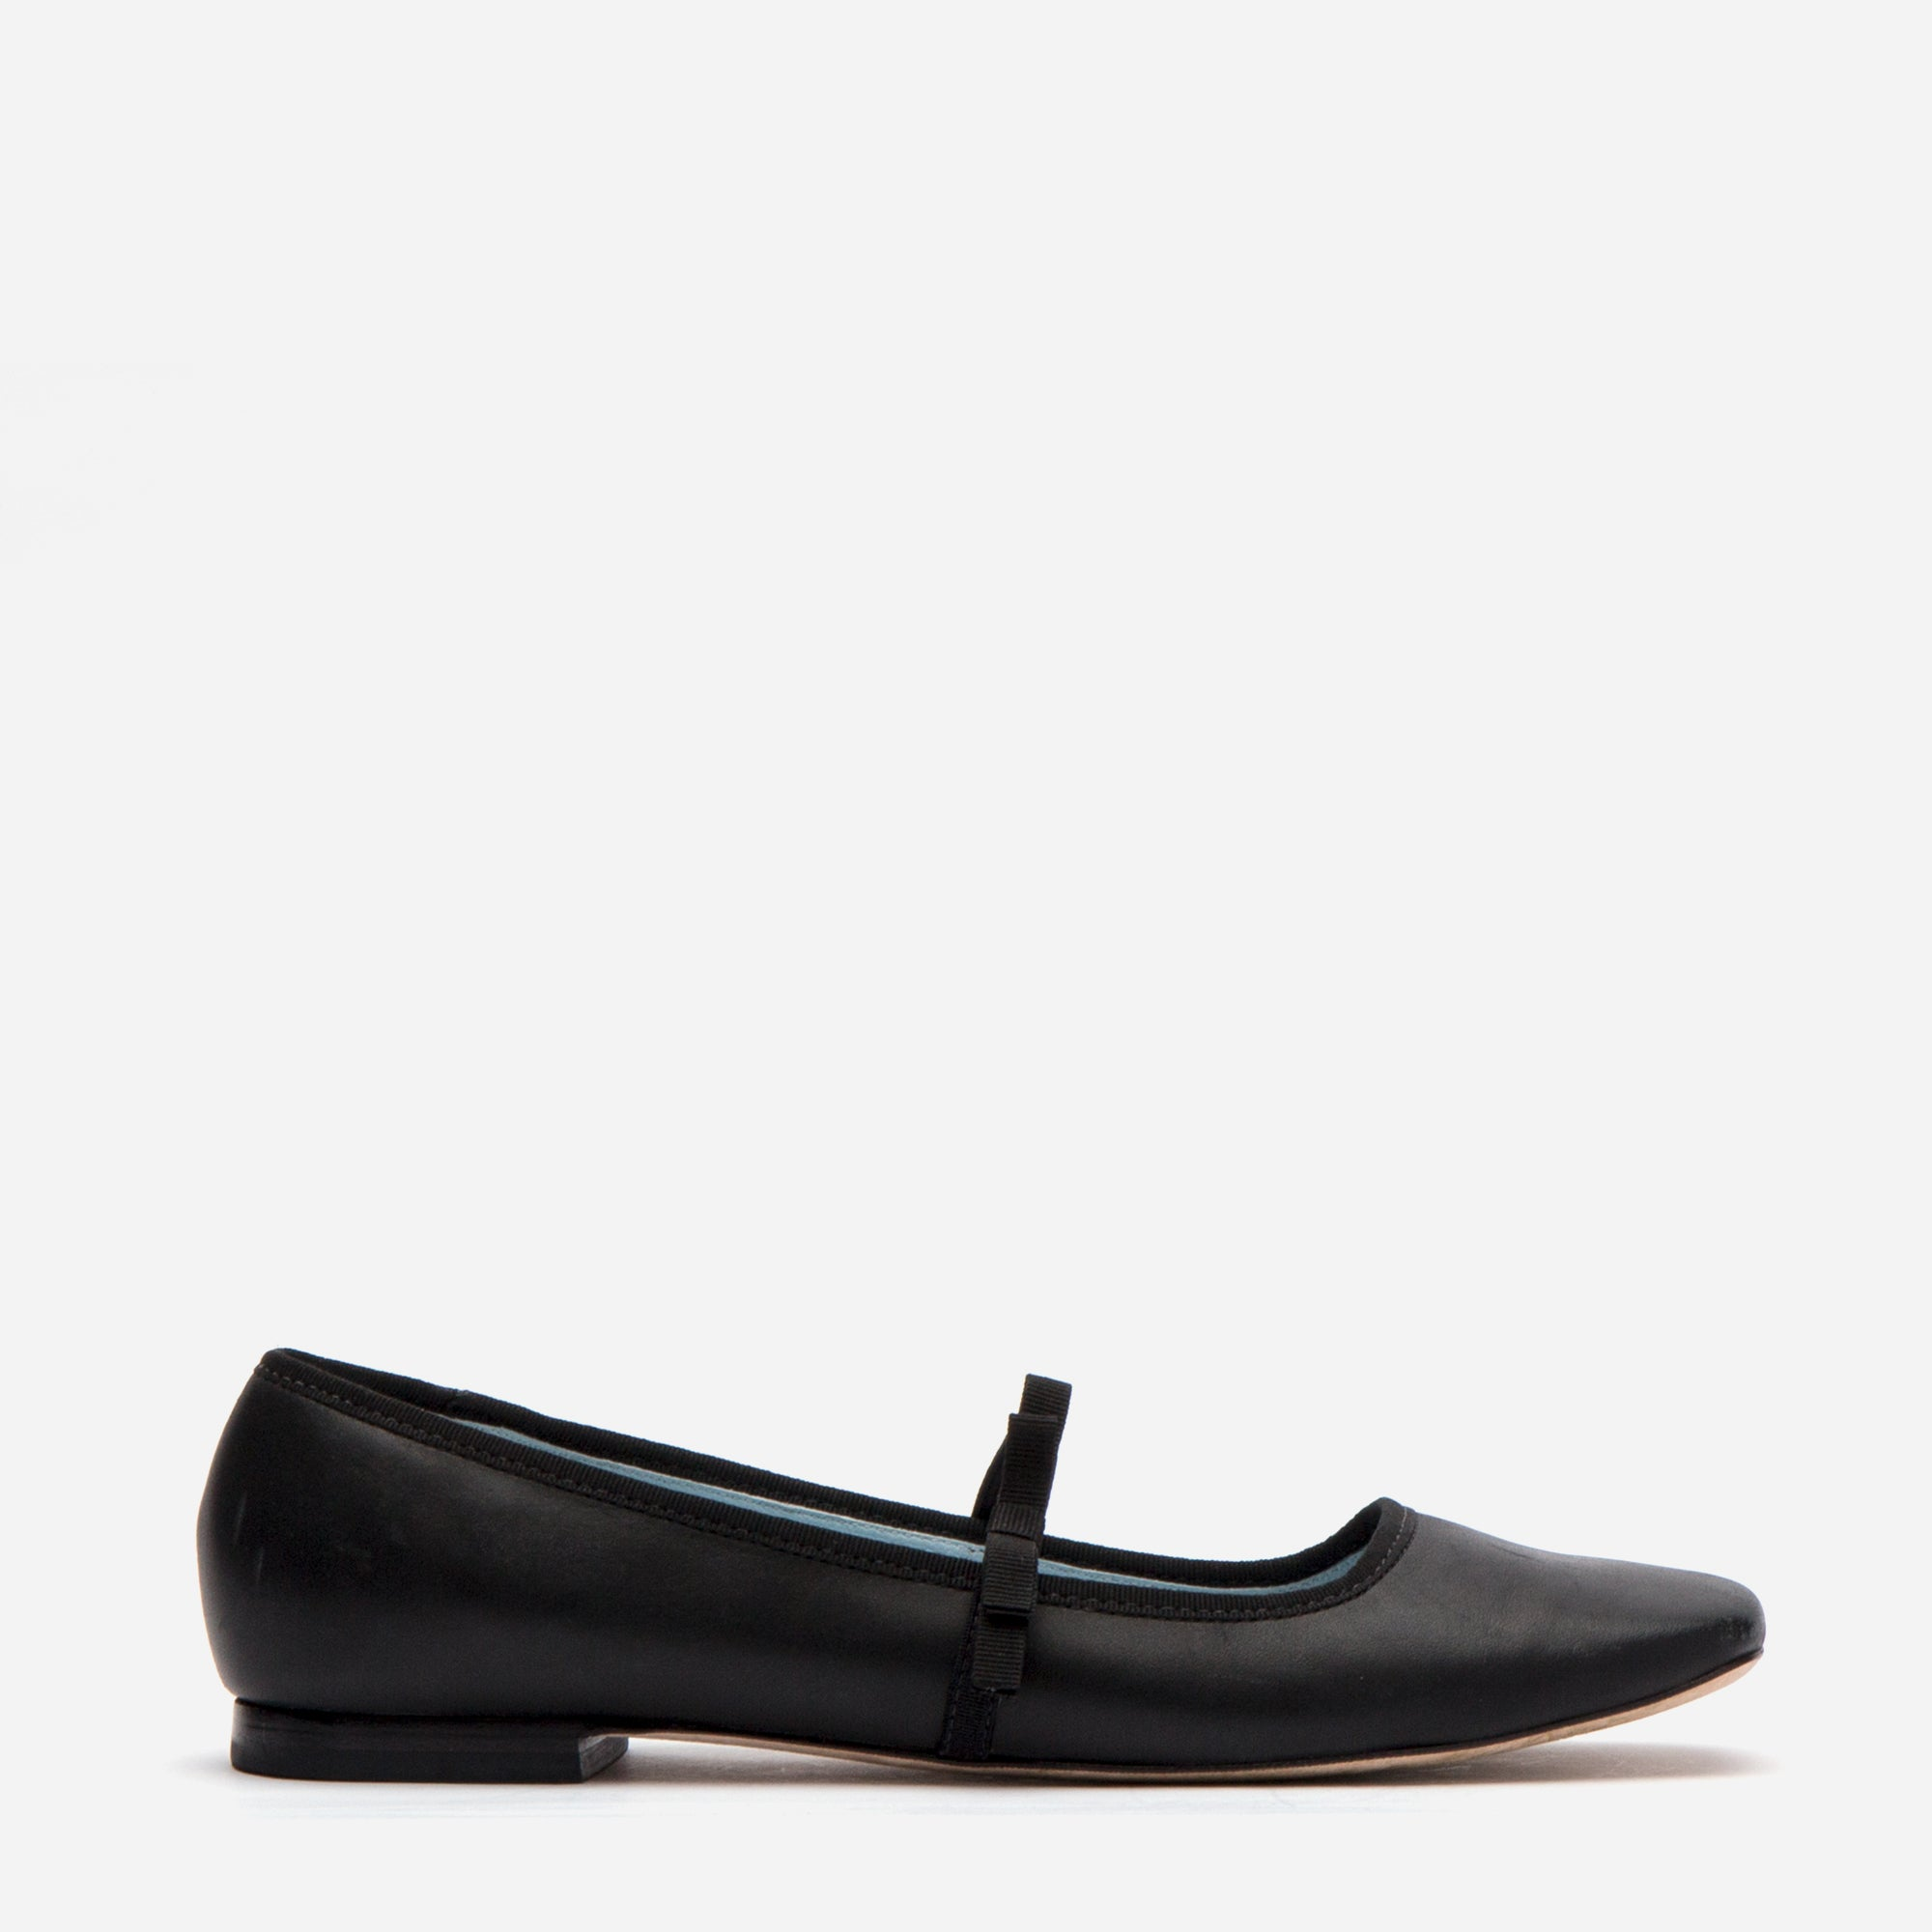 Jude Mary Jane Leather Flat Black - Frances Valentine